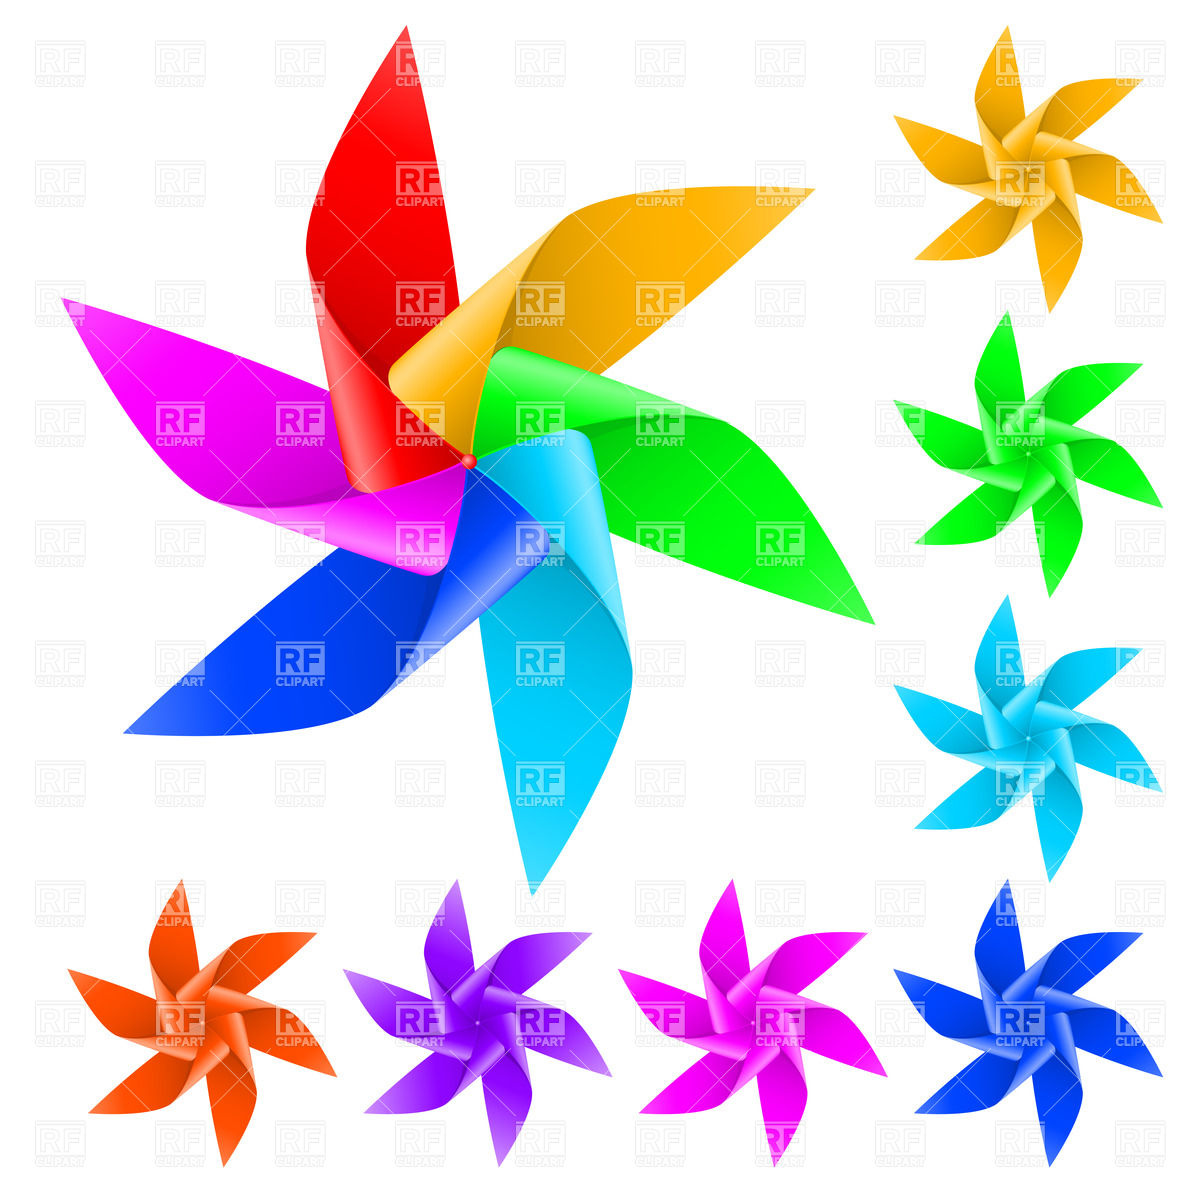 Toy windmill propeller with multicolored blades Vector Image.